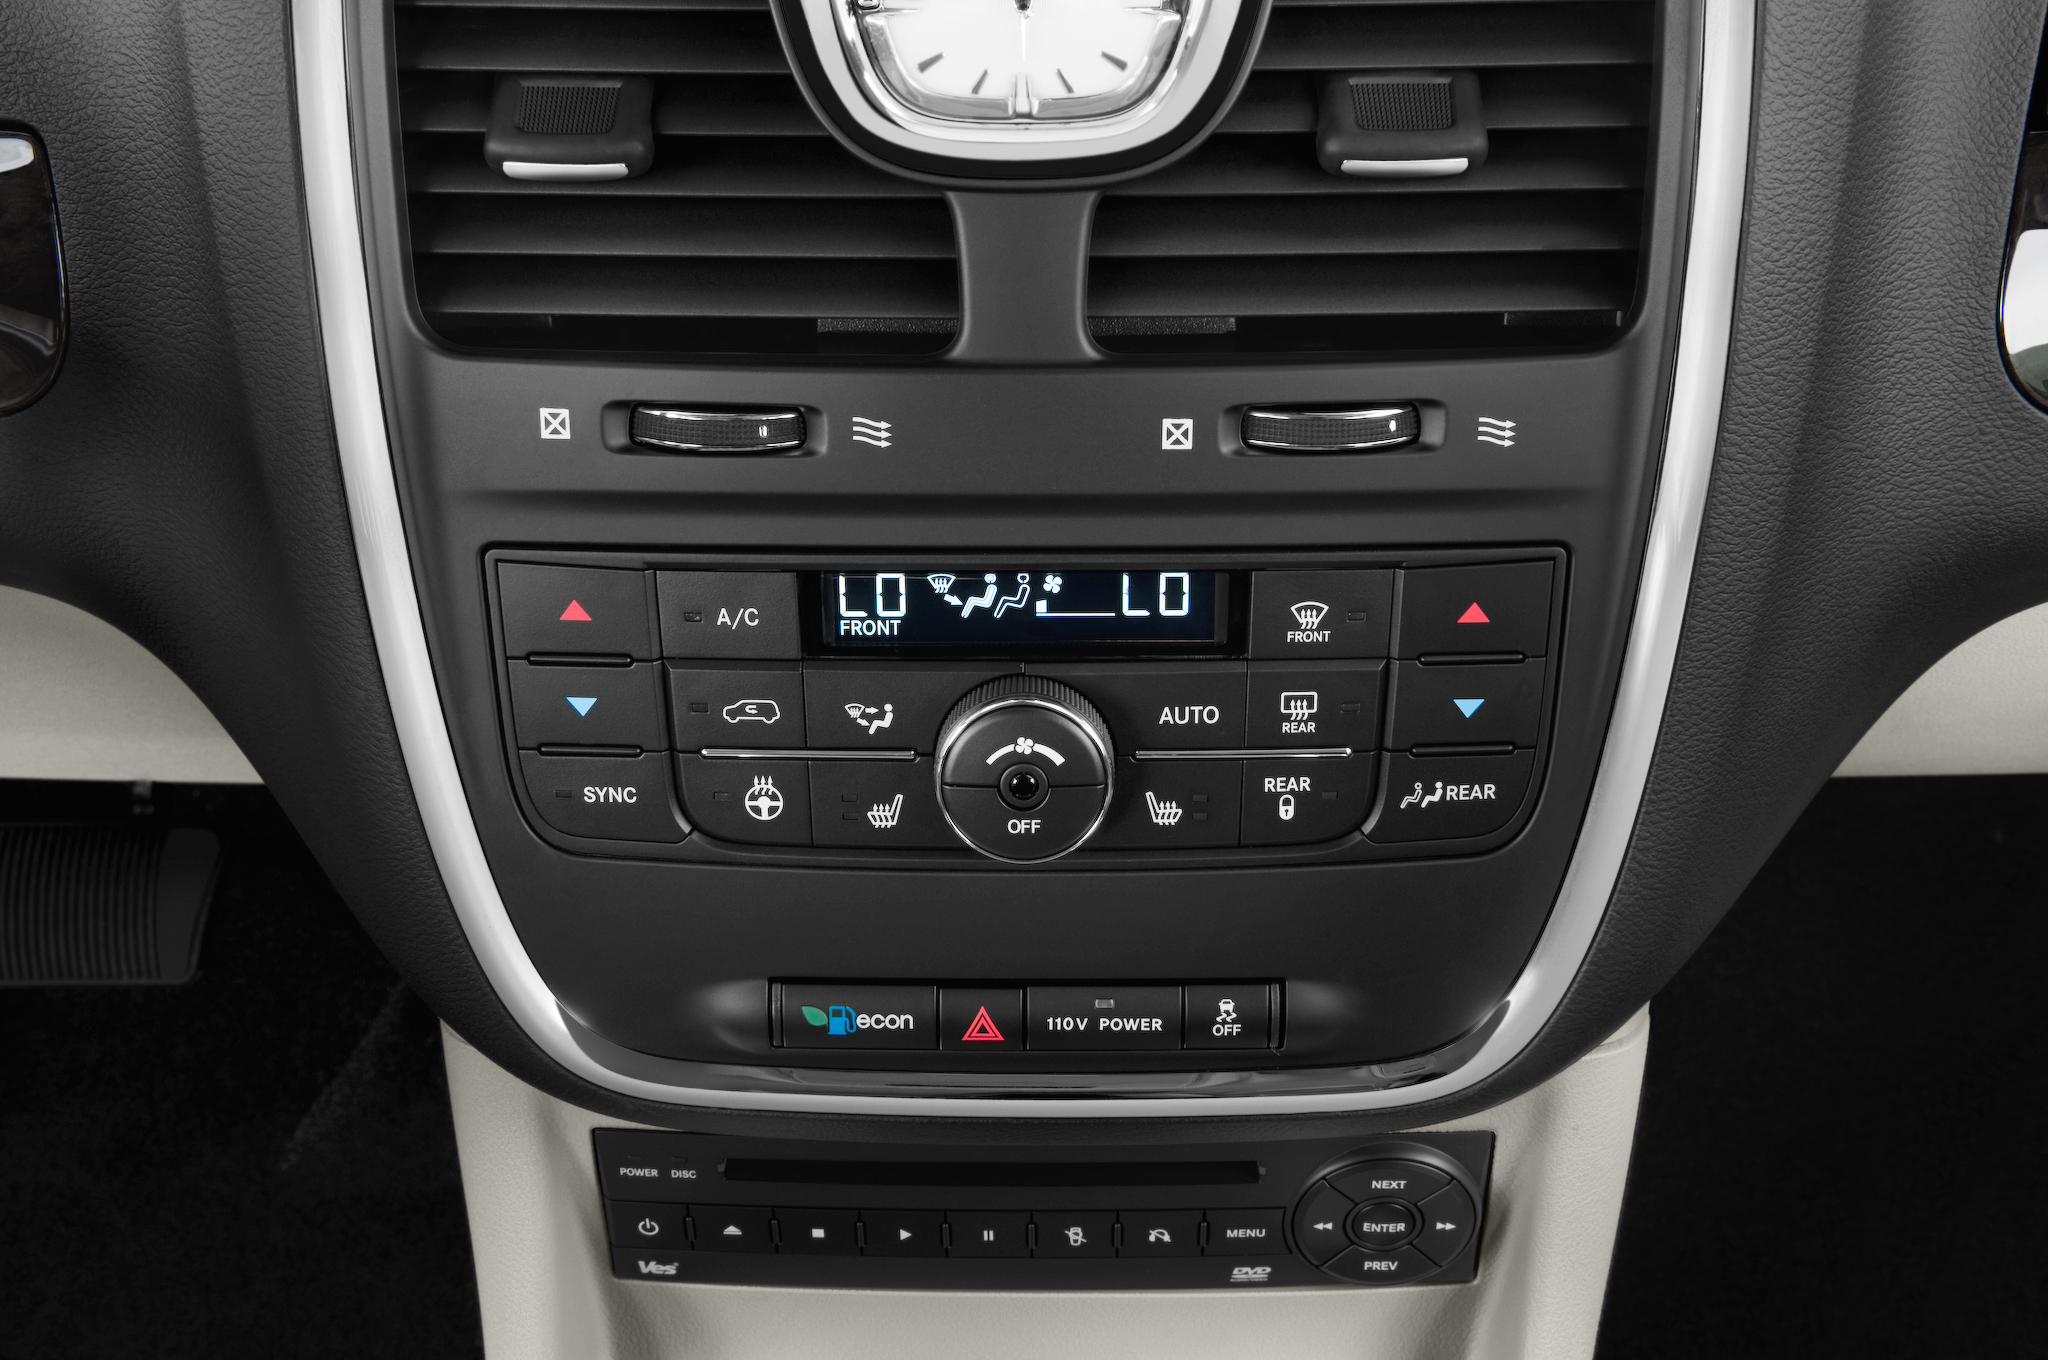 2014-chrysler-town-and-country-limited-minivan-temp-control Great Description About 2012 Chrysler town and Country Recalls with Amazing Photos Cars Review